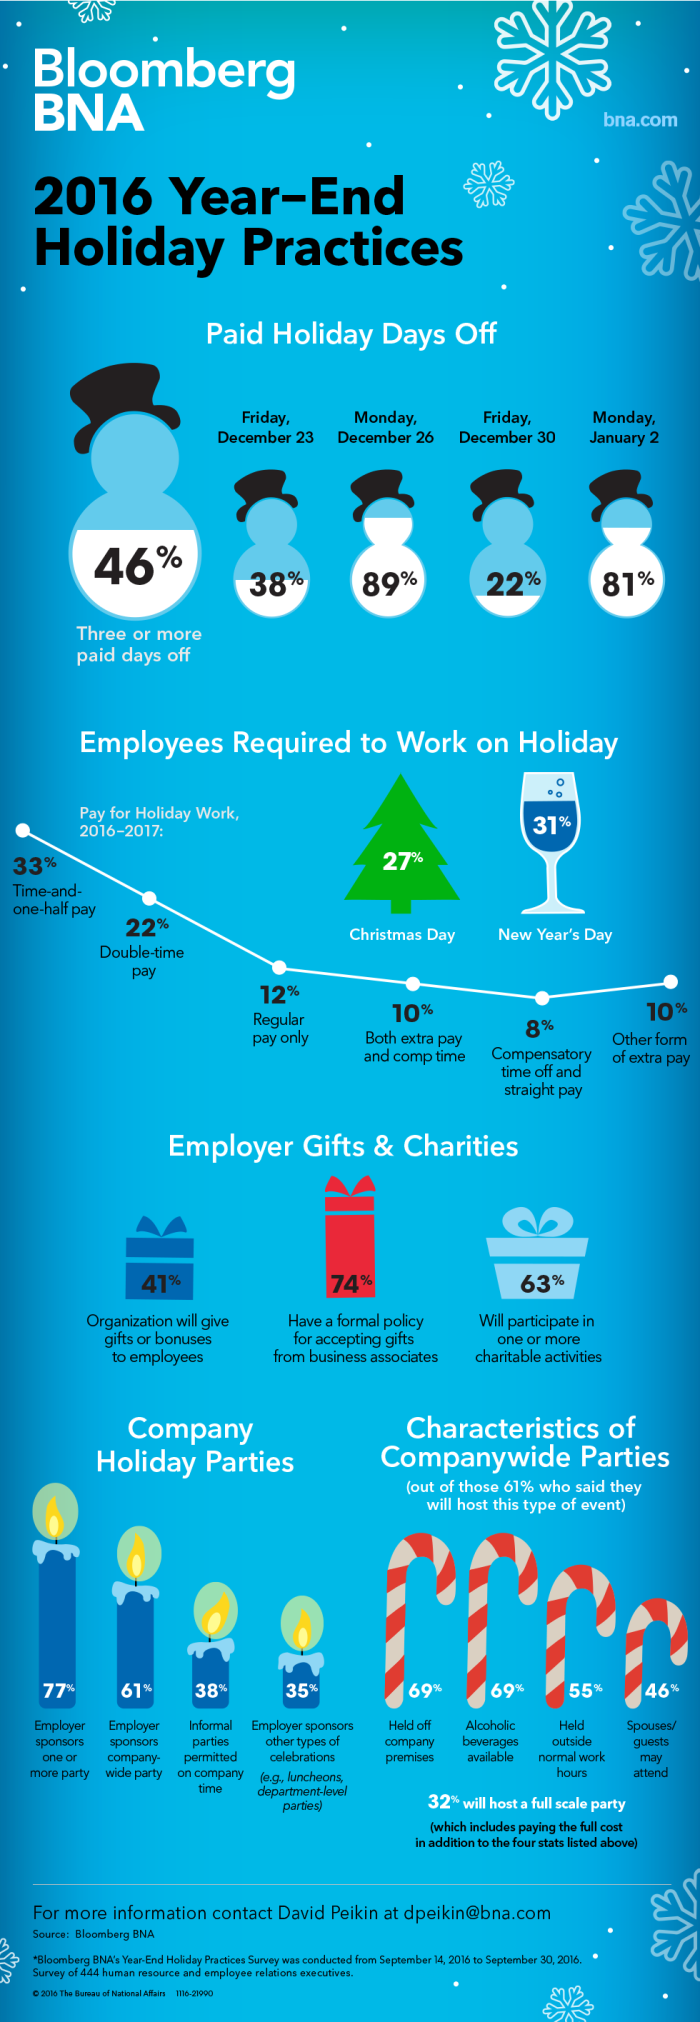 21990-HR-HRRC-2016-Year-End-Holiday-Practices-Infographic_large